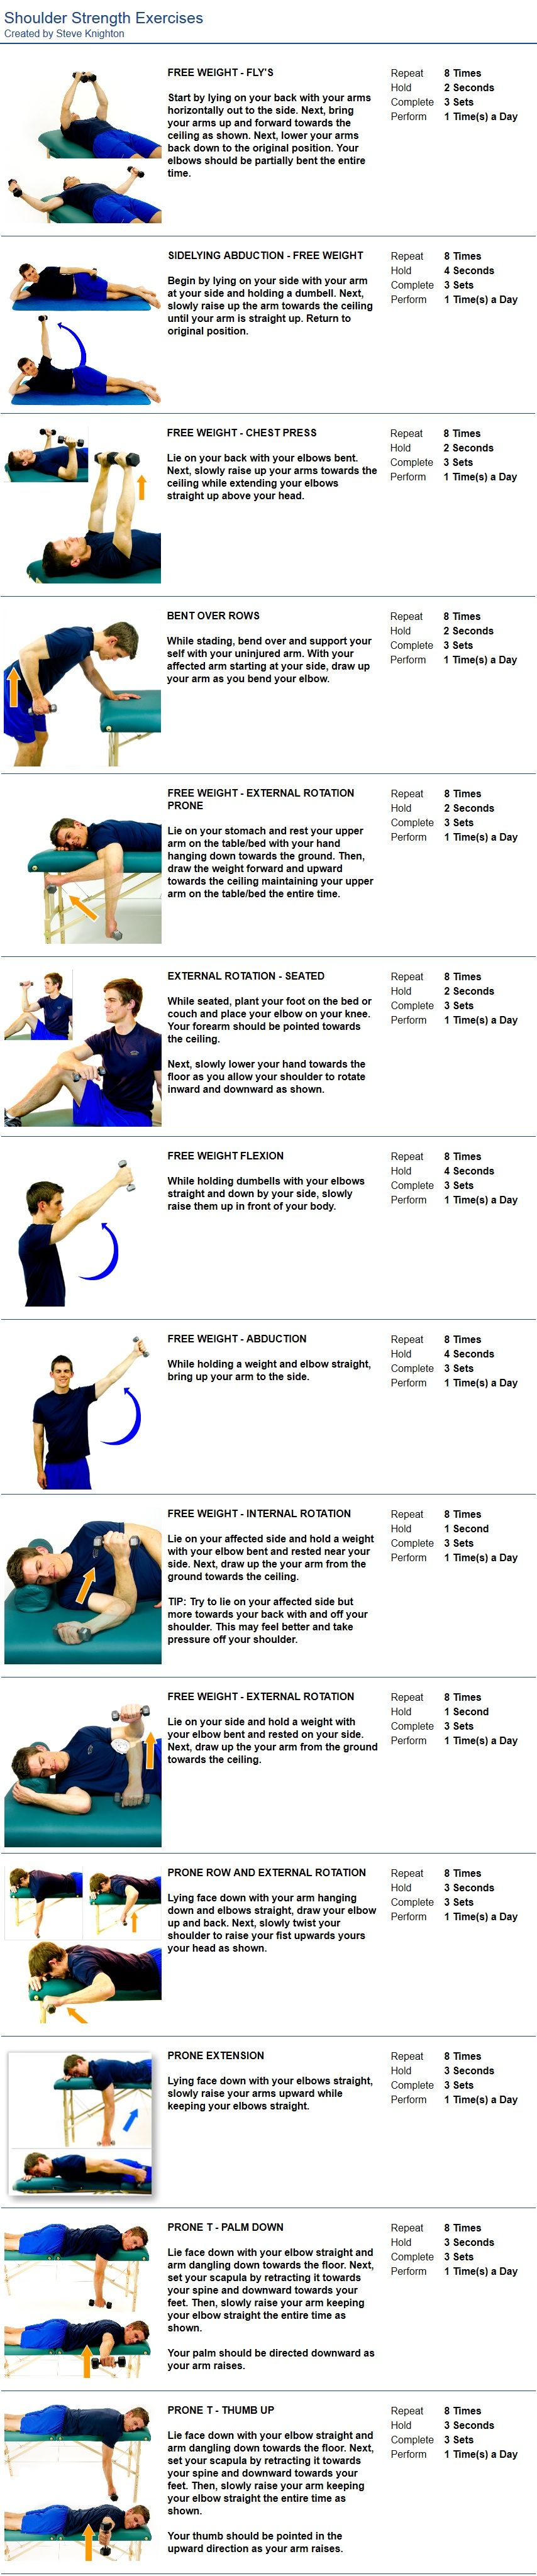 rotator cuff exercises shoulder strength exercises nova therapy rotator cuff exercises shoulder strength exercises nova therapy massage london personal training nutrition